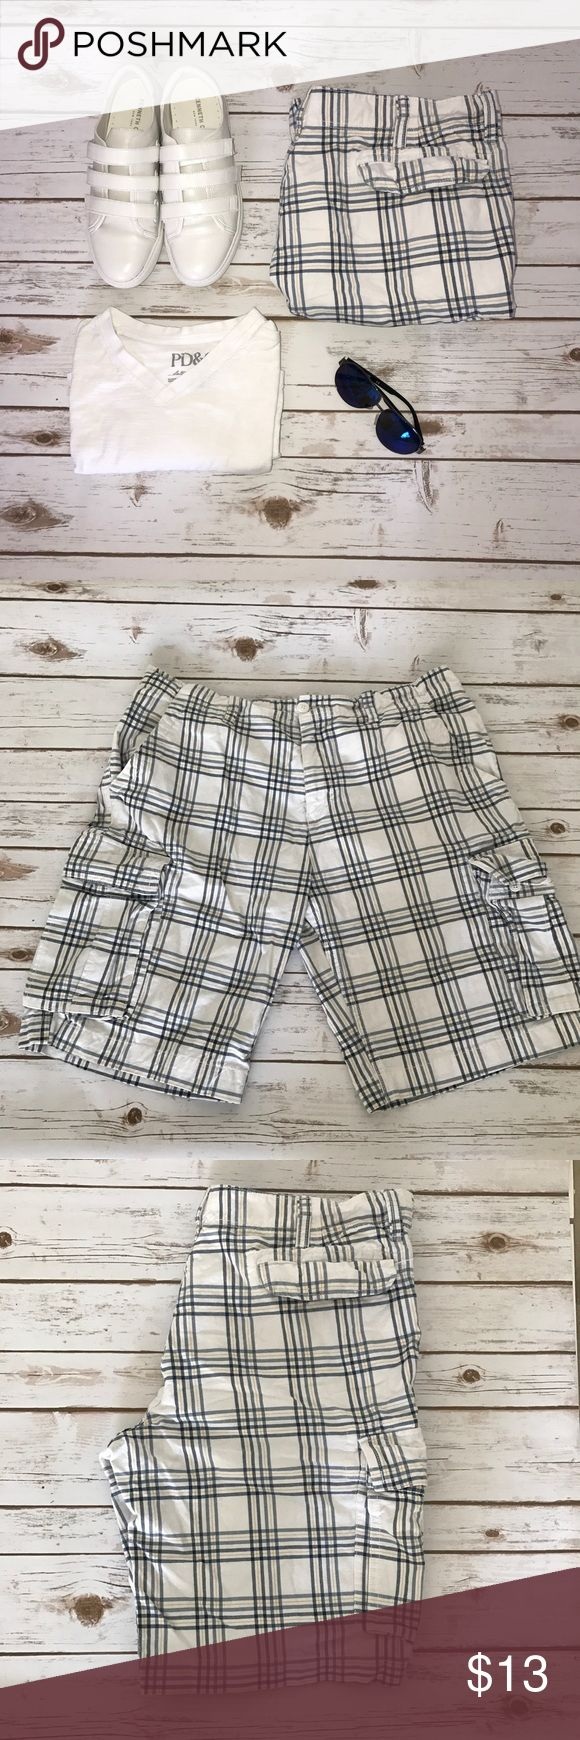 """Men cargo short Pre-owned White yellow lines and navy blue lines cargo shorts waist 38"""" & 22 """" long Old Navy Shorts Cargo"""